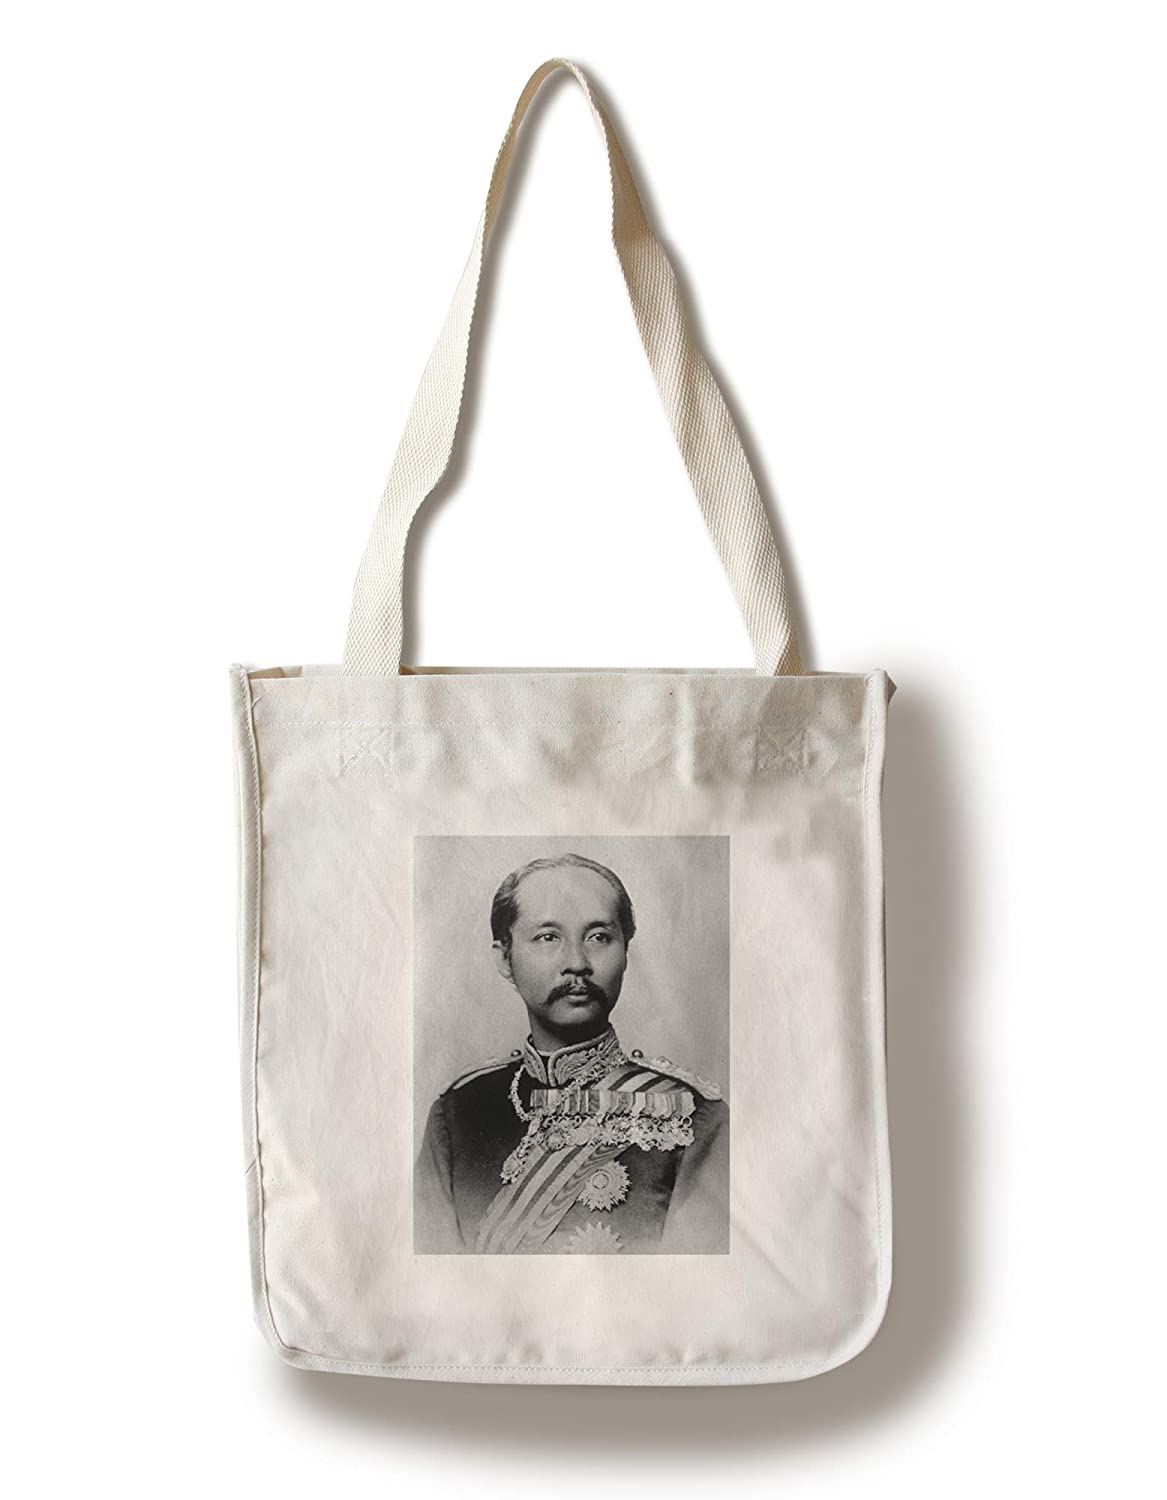 King Chulalongkorn Rama Vタイの写真 Canvas Tote Bag LANT-4687-TT B0182QRKG0  Canvas Tote Bag